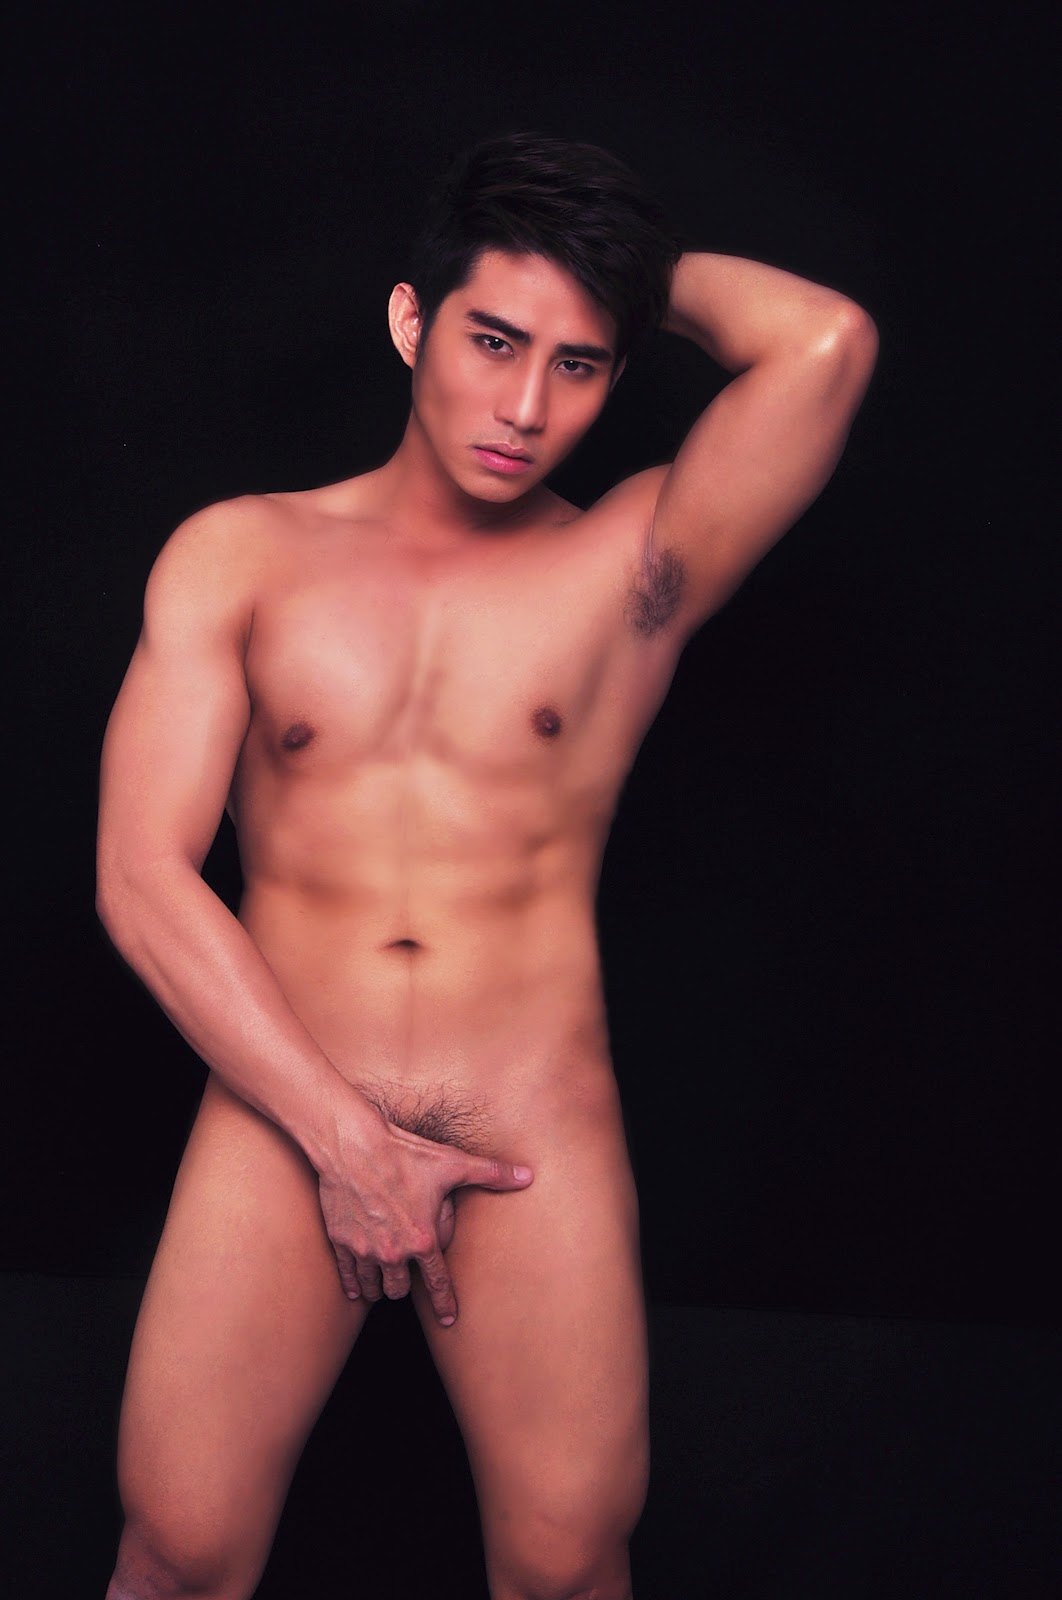 Bromance69 Pinoy Gay-Themed Indie Film- -7644